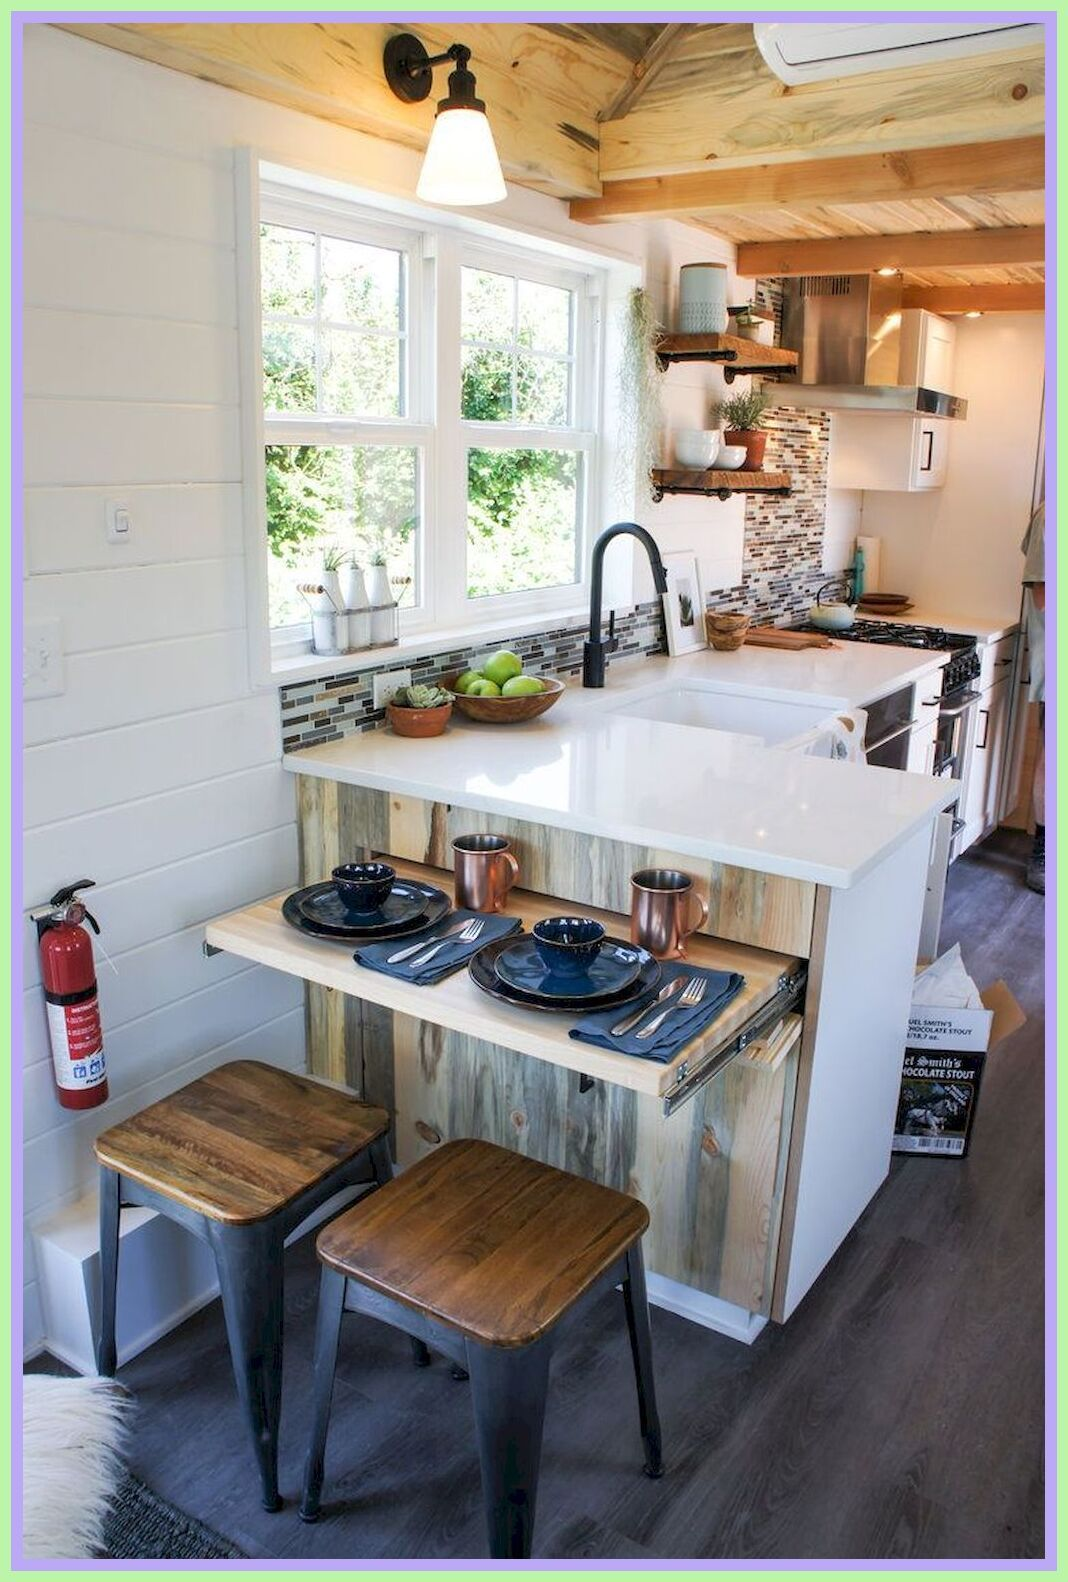 113 Reference Of Kitchen Dining Room Small Tiny House Decor In 2020 House Design Kitchen Tiny House Kitchen Kitchen Design Small